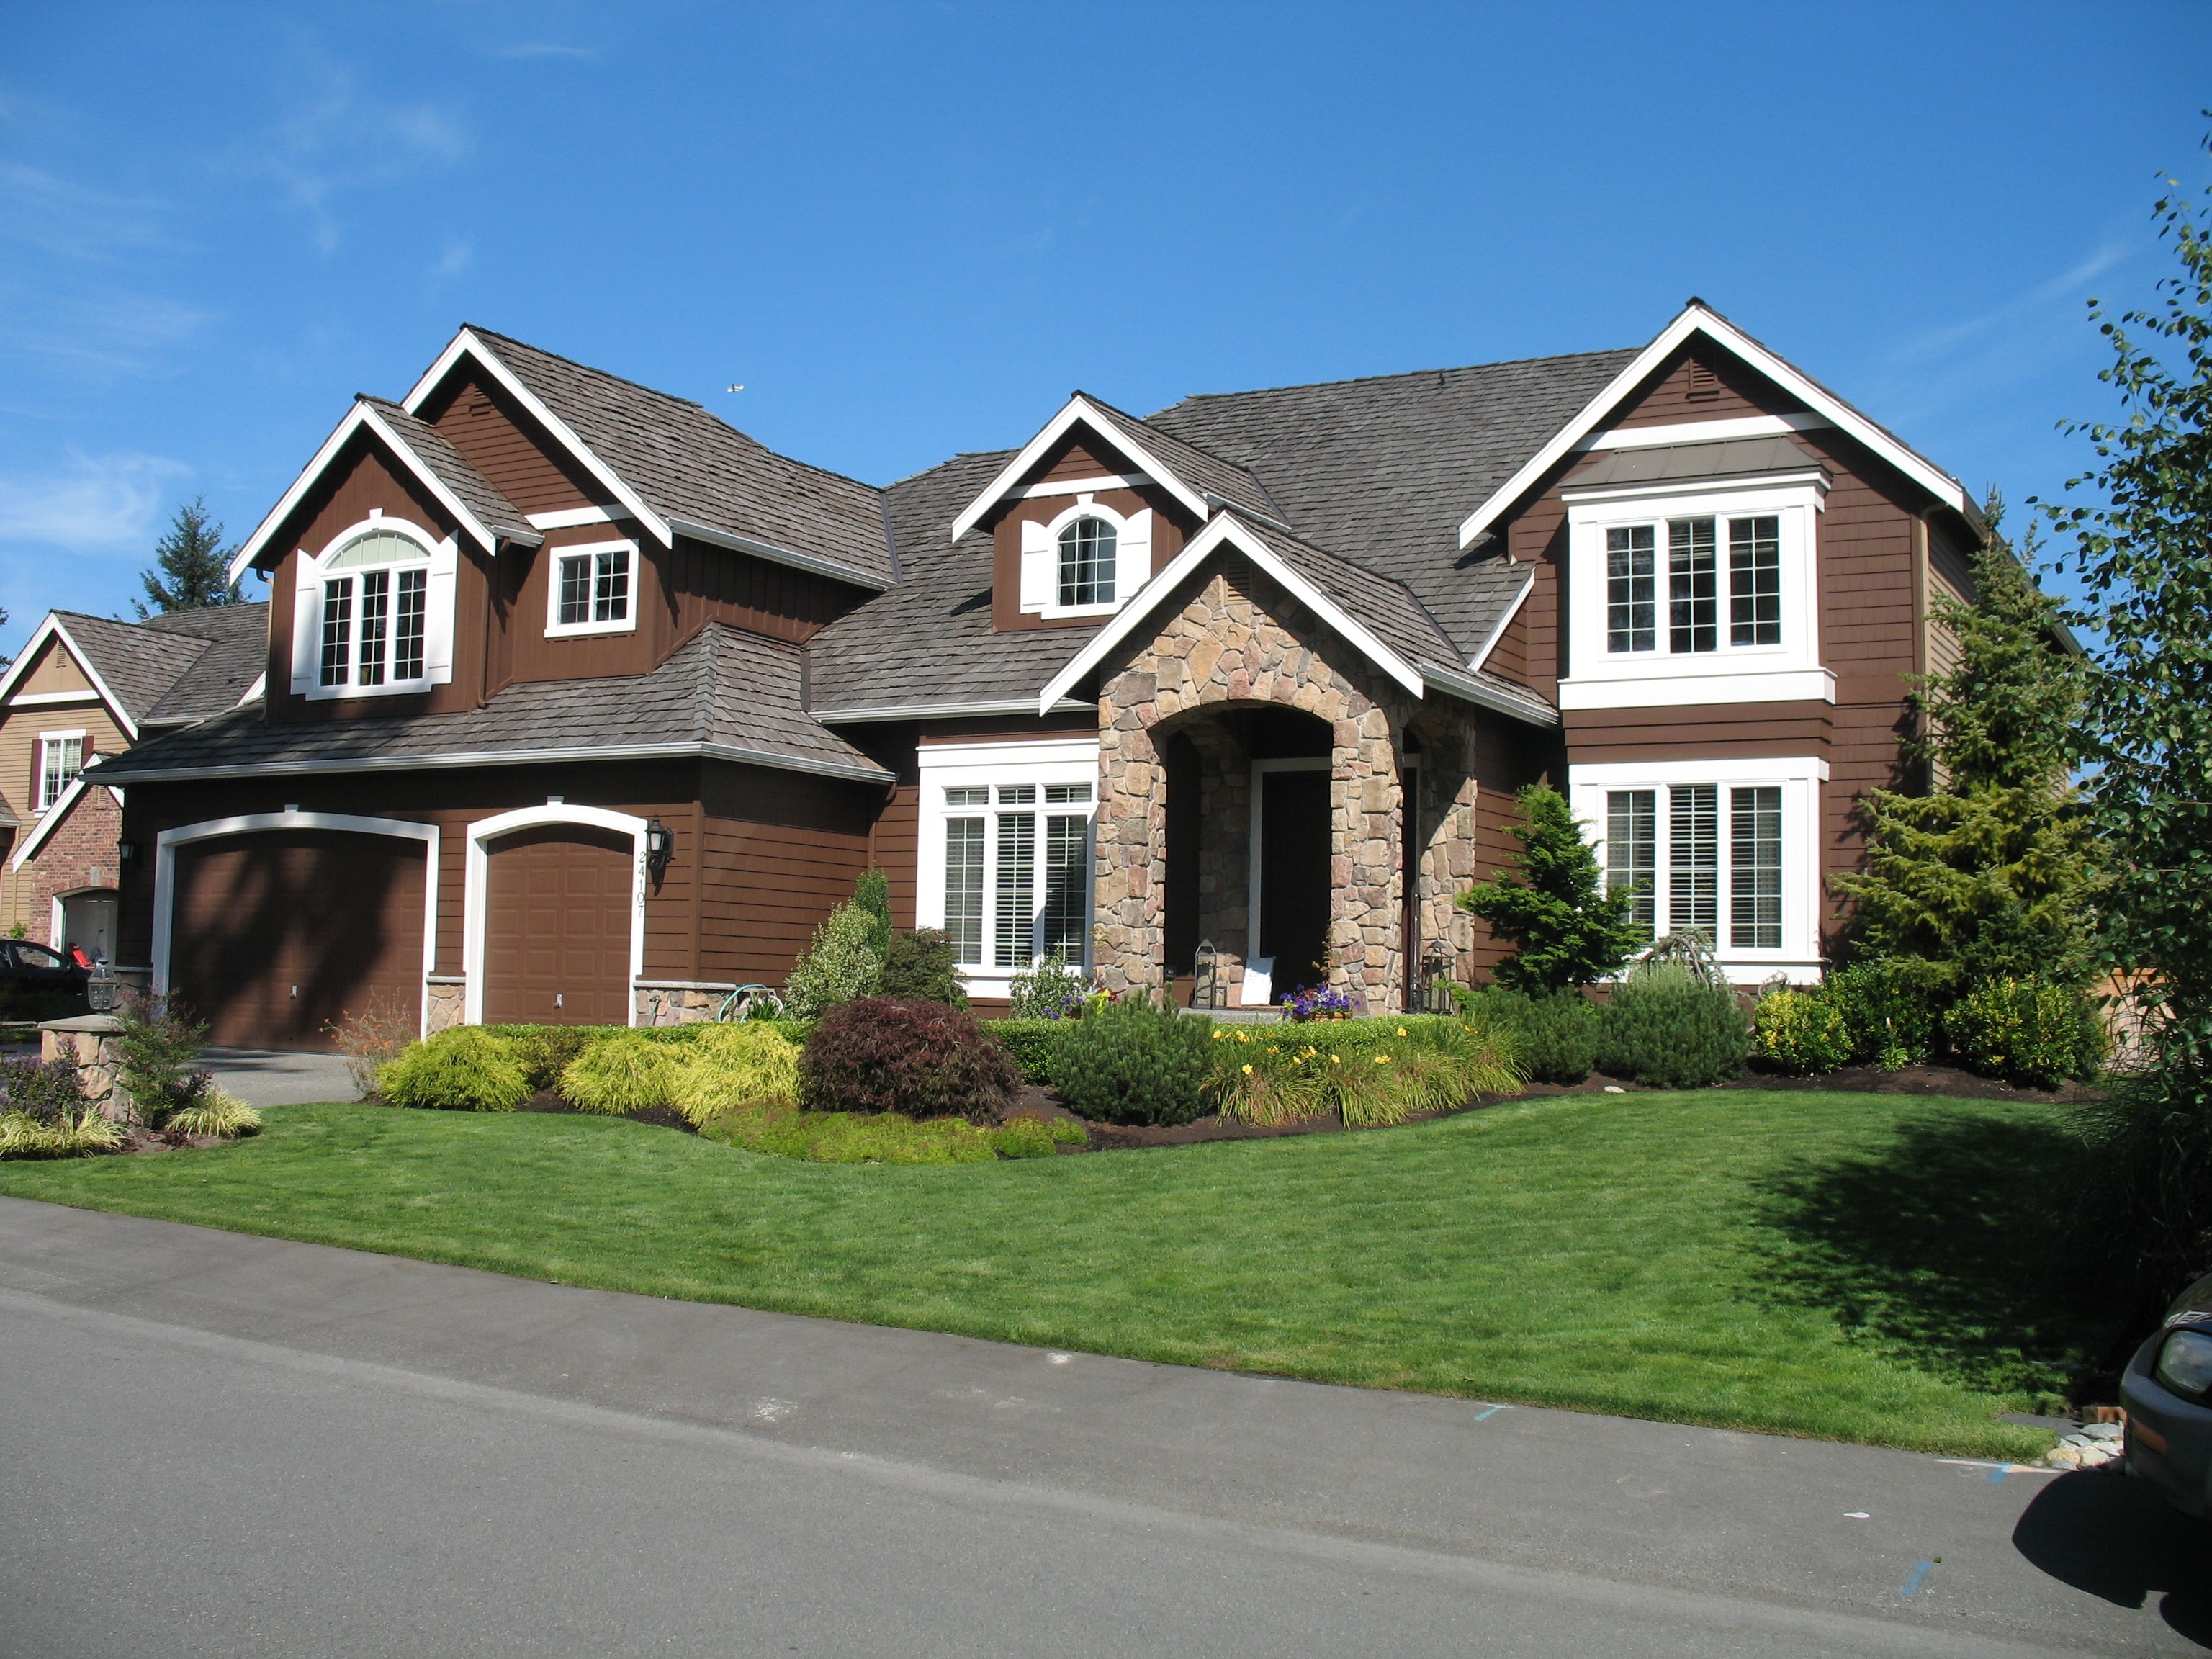 Best Top 20 Brown Houses With White Trim Light Dark Exterior 640 x 480